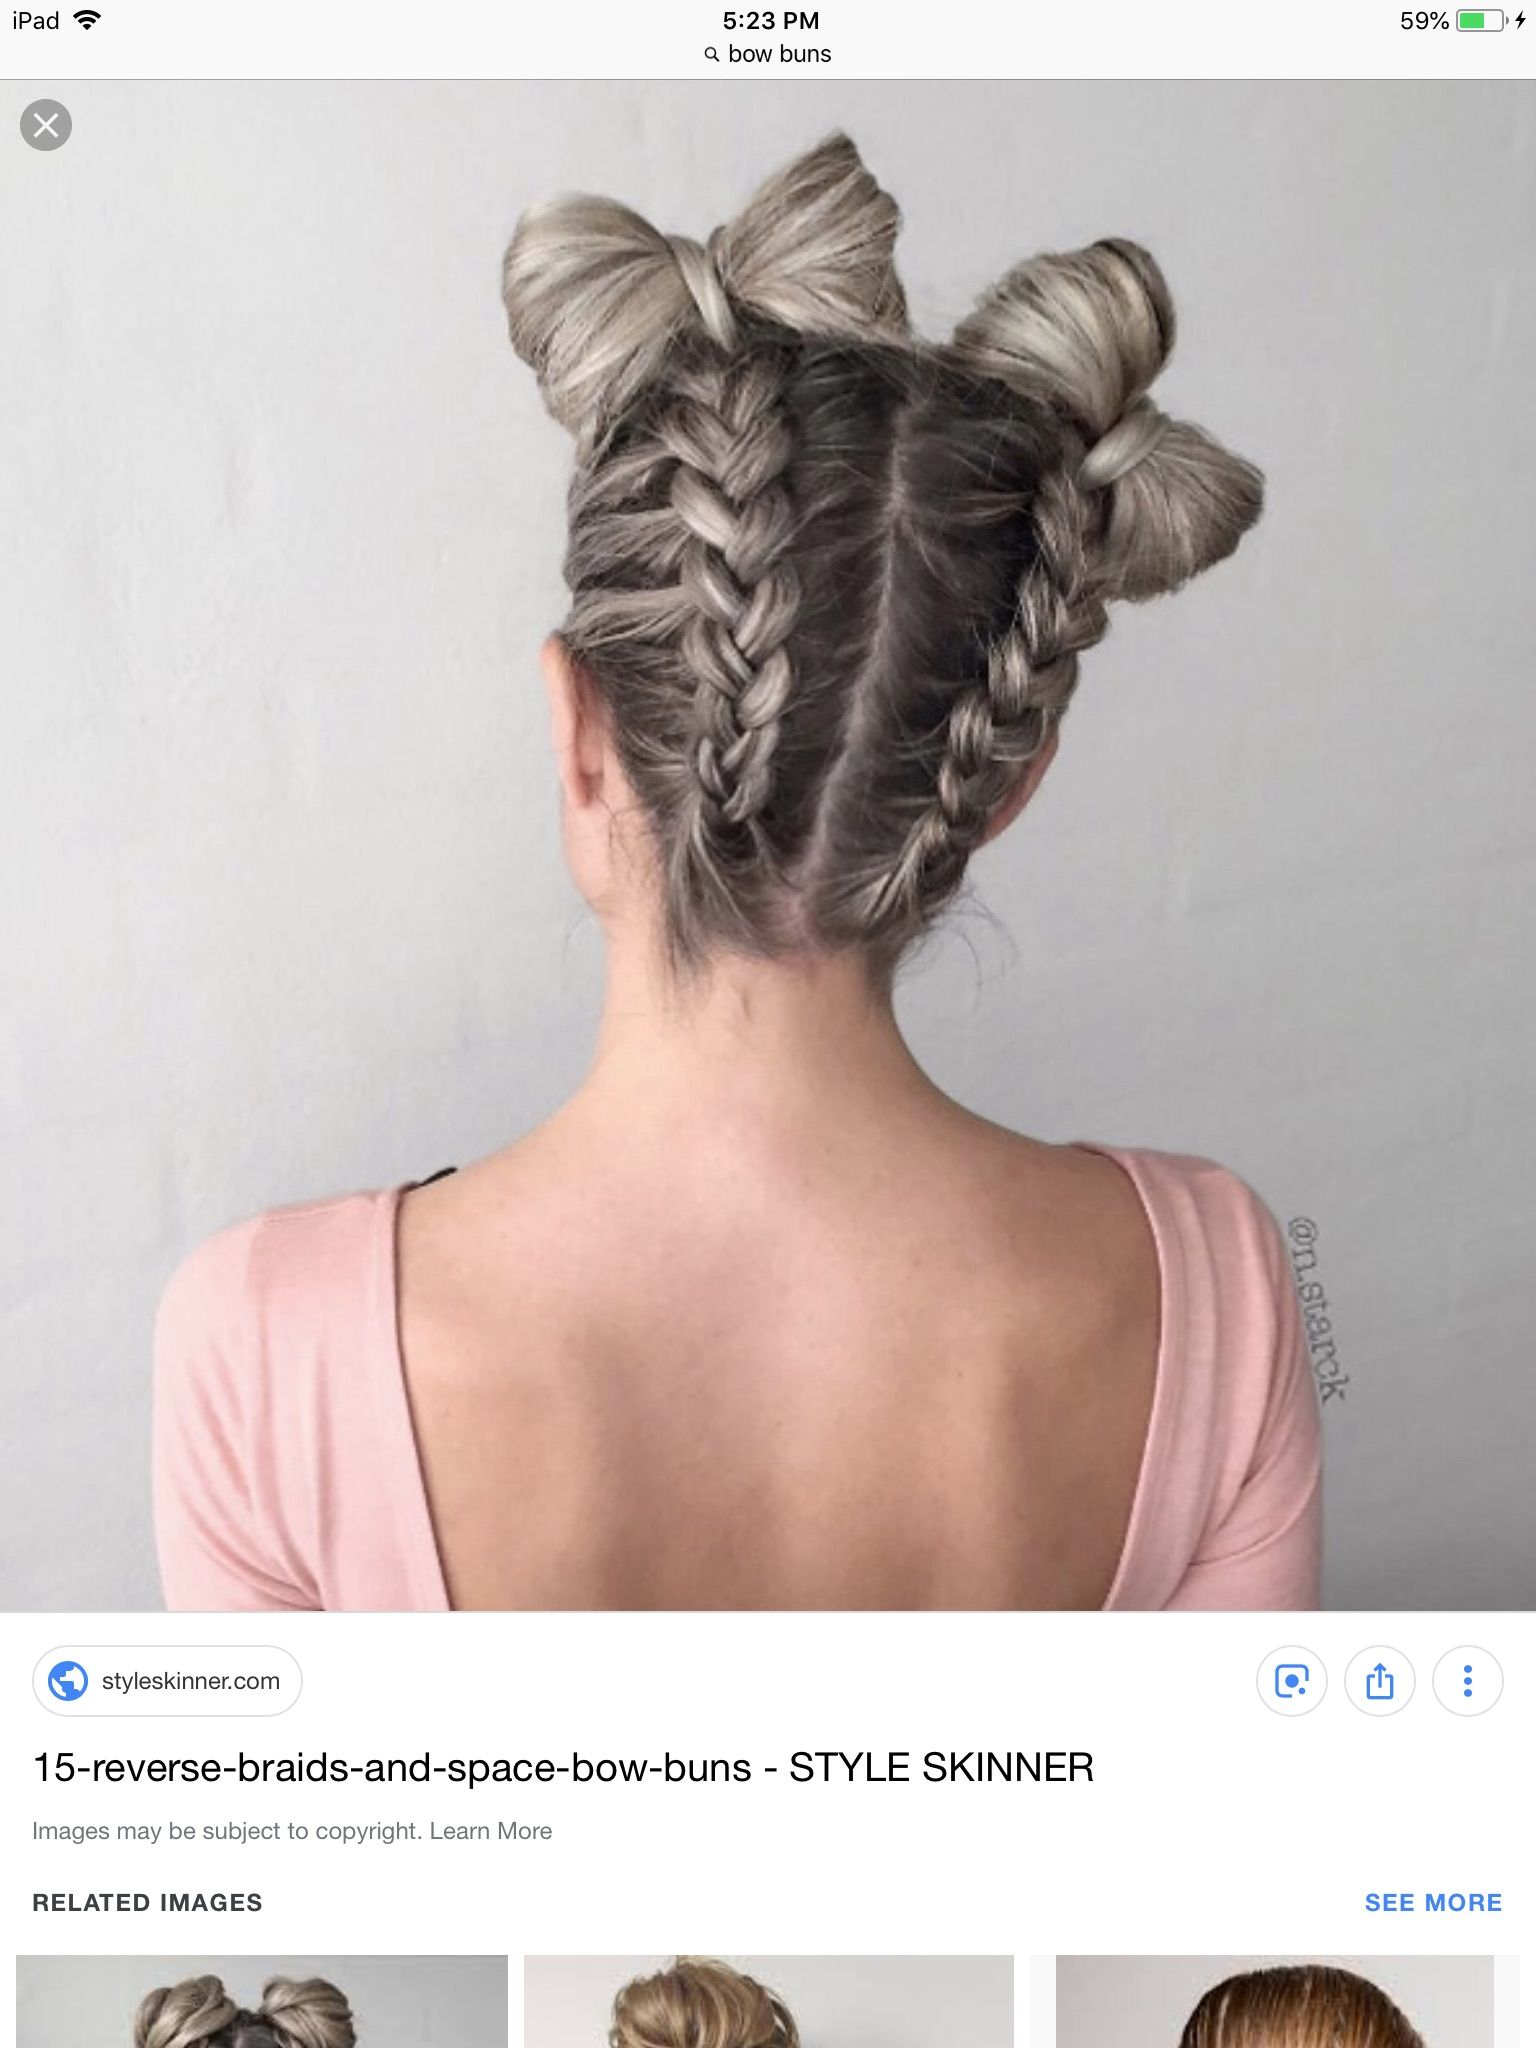 Reverse French Braid Hairstyle With Bow Pigtails Braided Bow Hairstyle Bow Hairstyle French Braids Tutorial